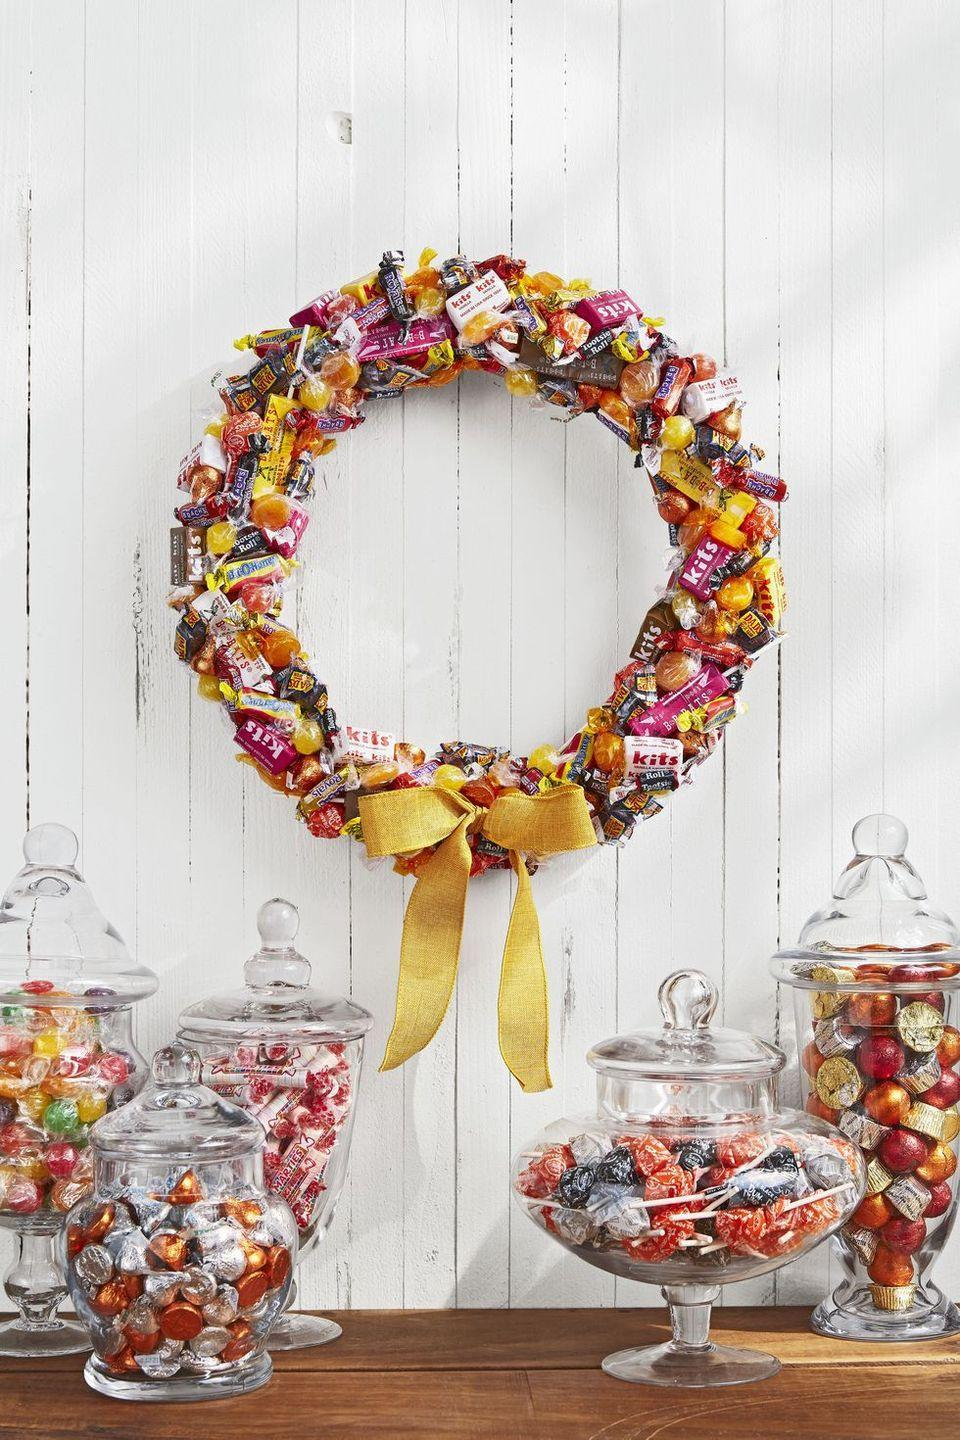 <p>This one will require some parent supervision (those glue guns get <em>hot!</em>). But kids can pitch in by picking the candy and tying on the bow to the candy-covered wreath form.</p>